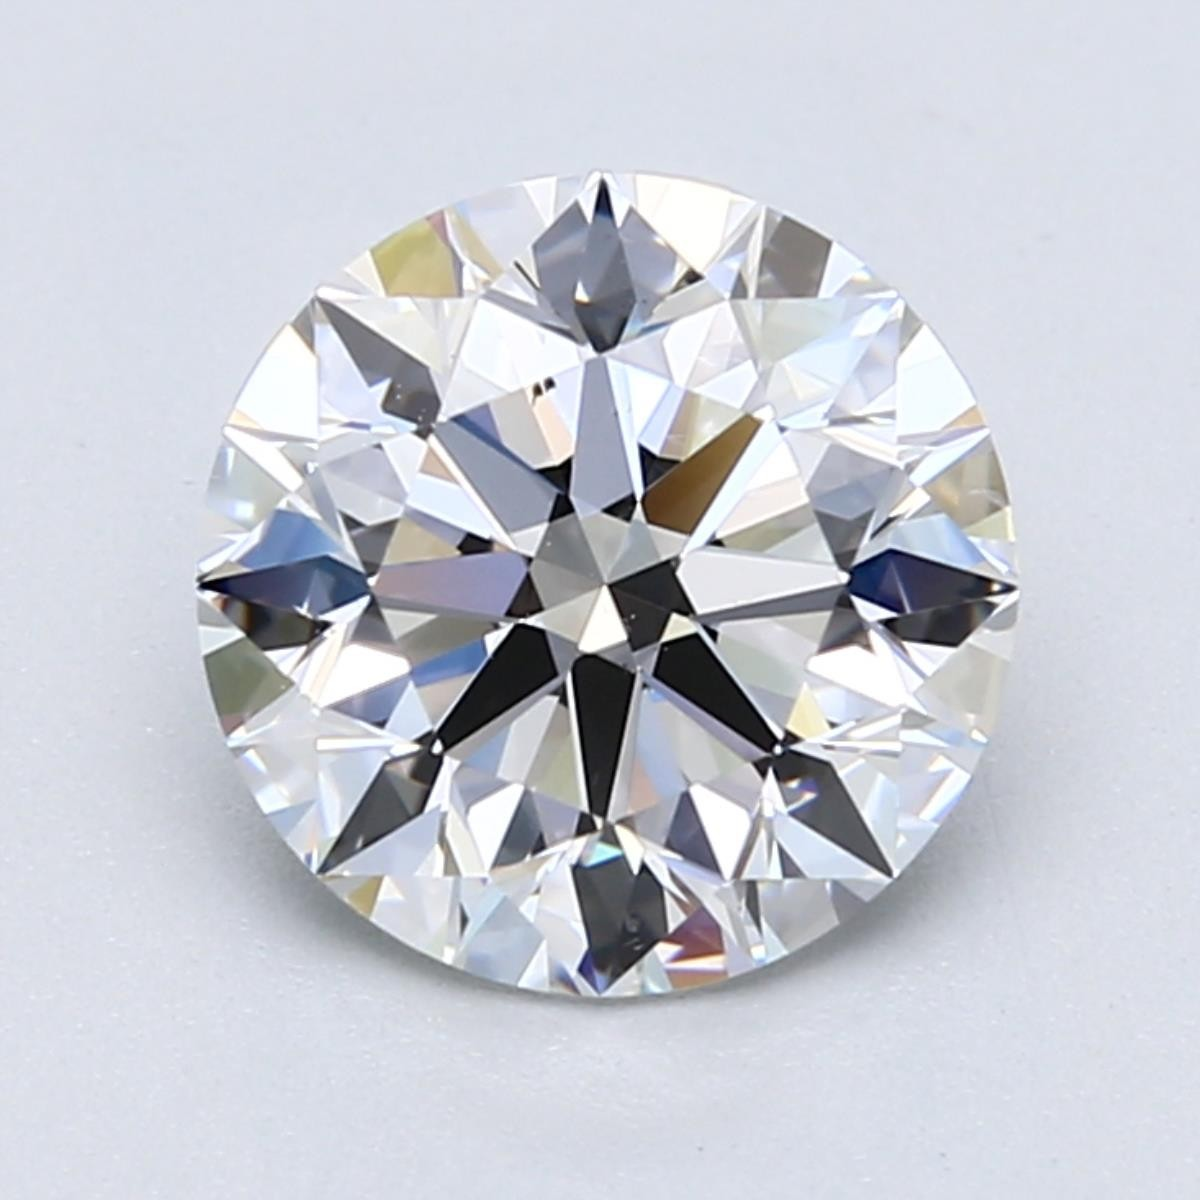 2.5 carat D color diamond